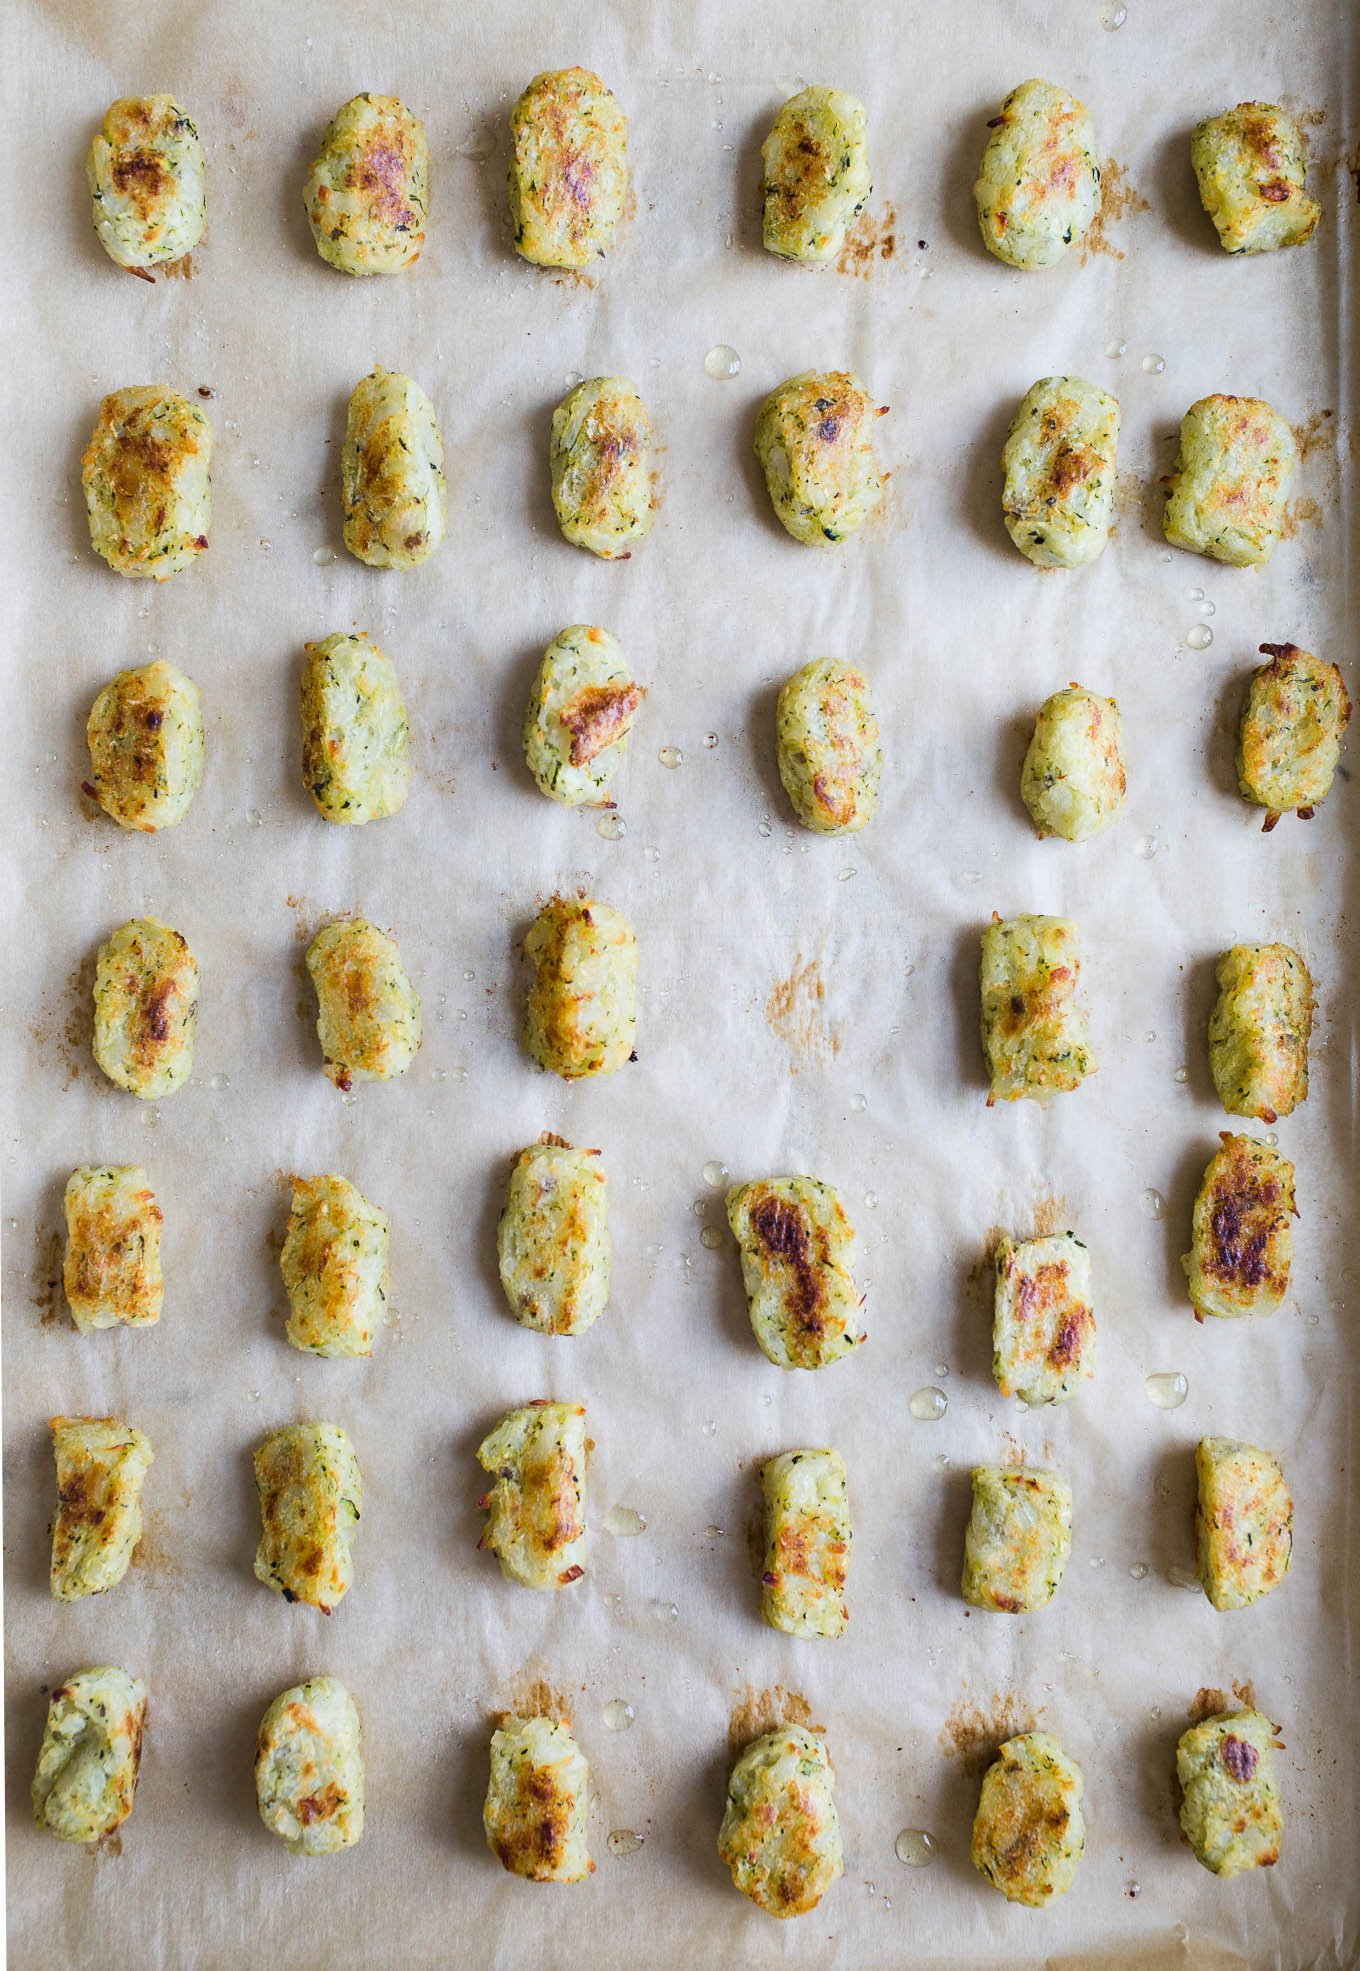 Baked Zucchini Tater Tots make for a veggie-friendly side dish, appetizer, or snack. Made with fresh zucchini and russet potatoes, these 4-ingredient zucchini tots are sure to be a crowd-pleaser. Gluten-free, vegan.